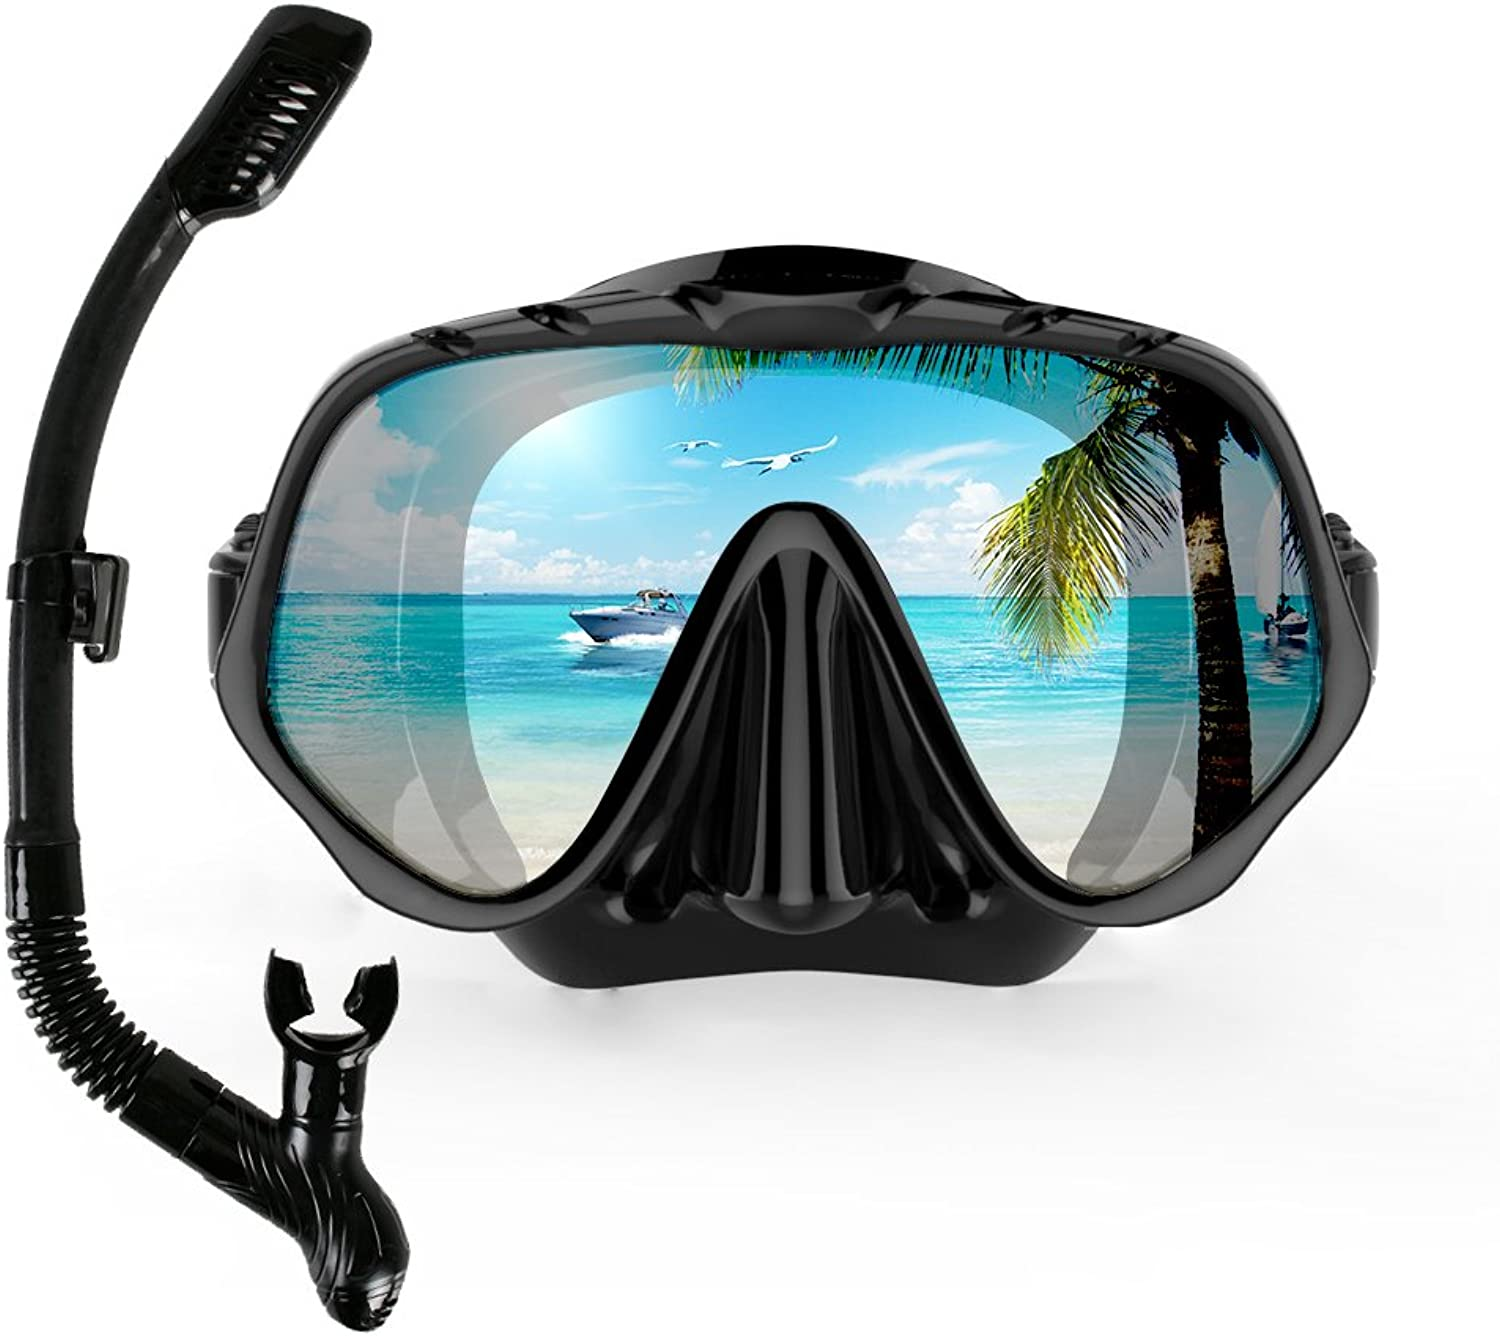 COPOZZ Snorkel Mask Set - Snorkeling Gear - Double Lens Diving Mask & Snorkel w  Dry Top Lower Purge Valve Perfect for Diving Snorkeling Swimming (41+49_Black)